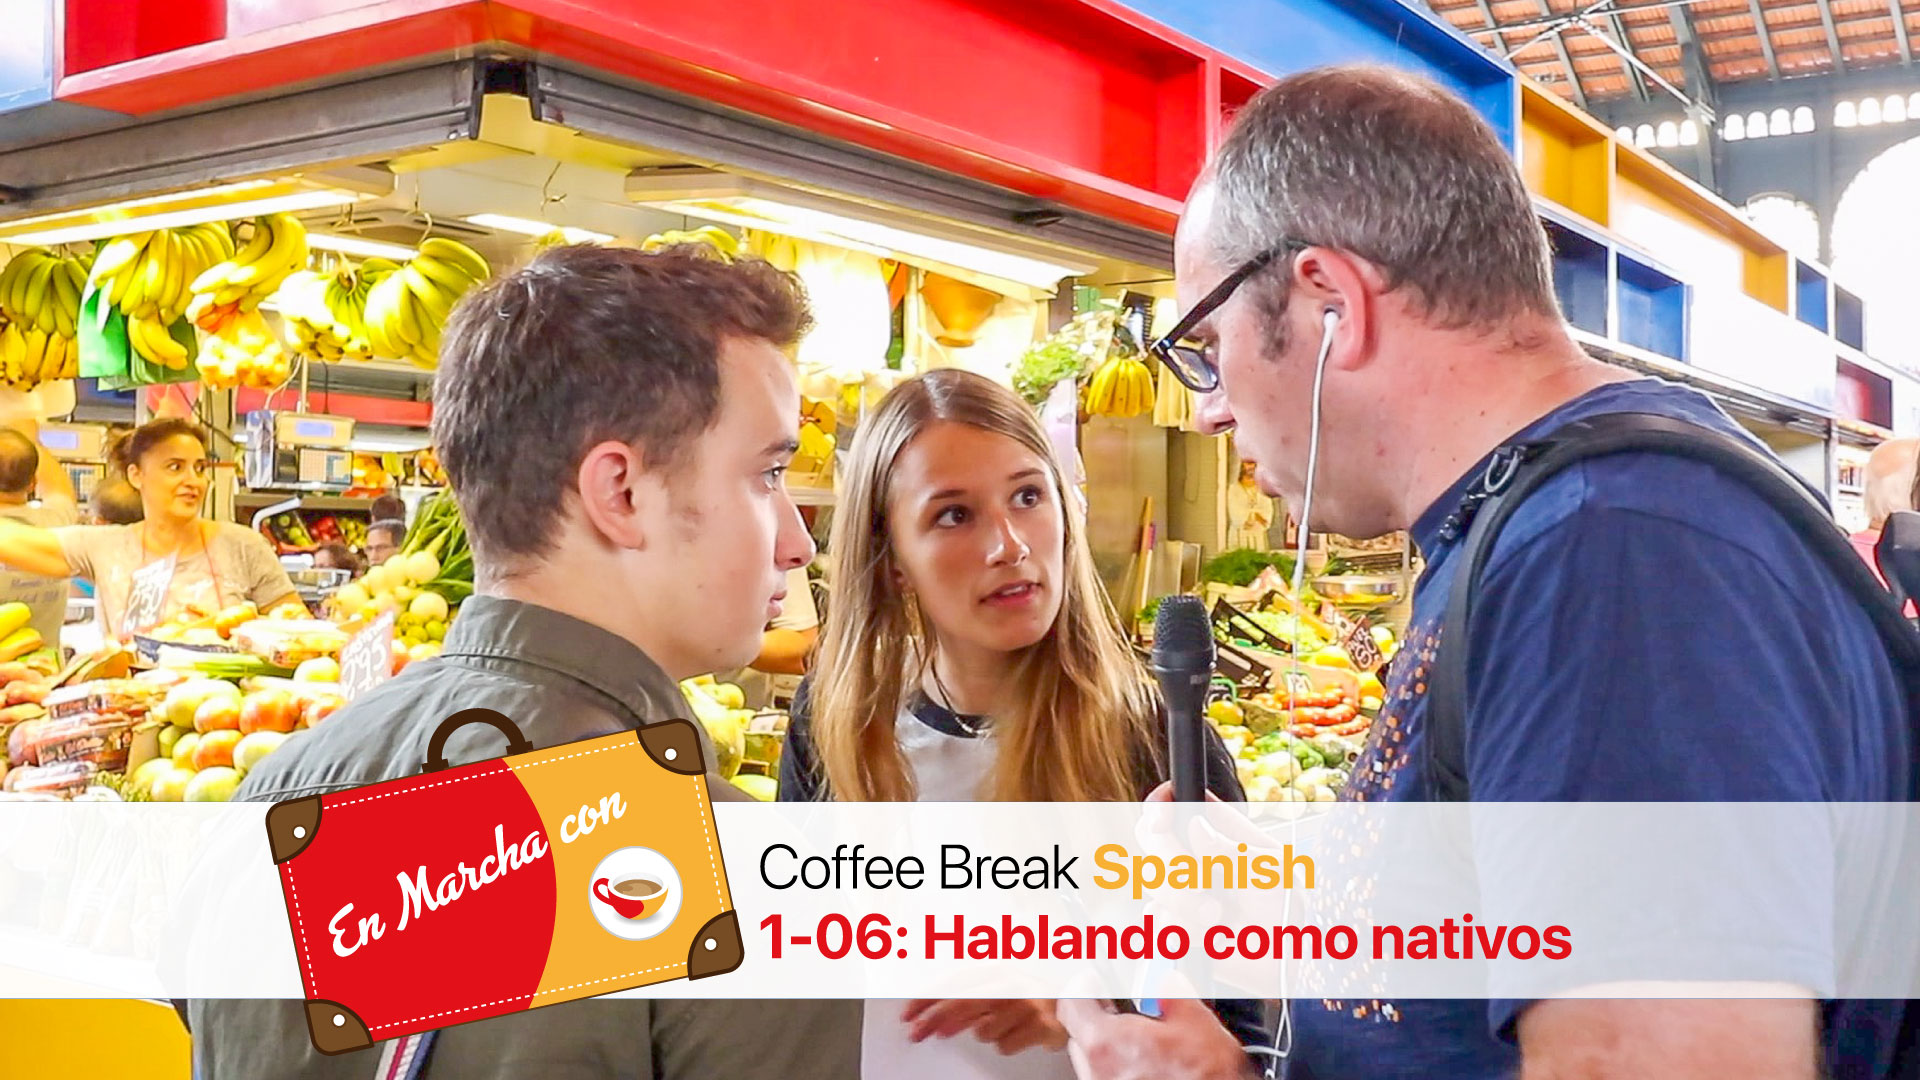 Coffee Break Spanish Archives - Coffee Break Languages